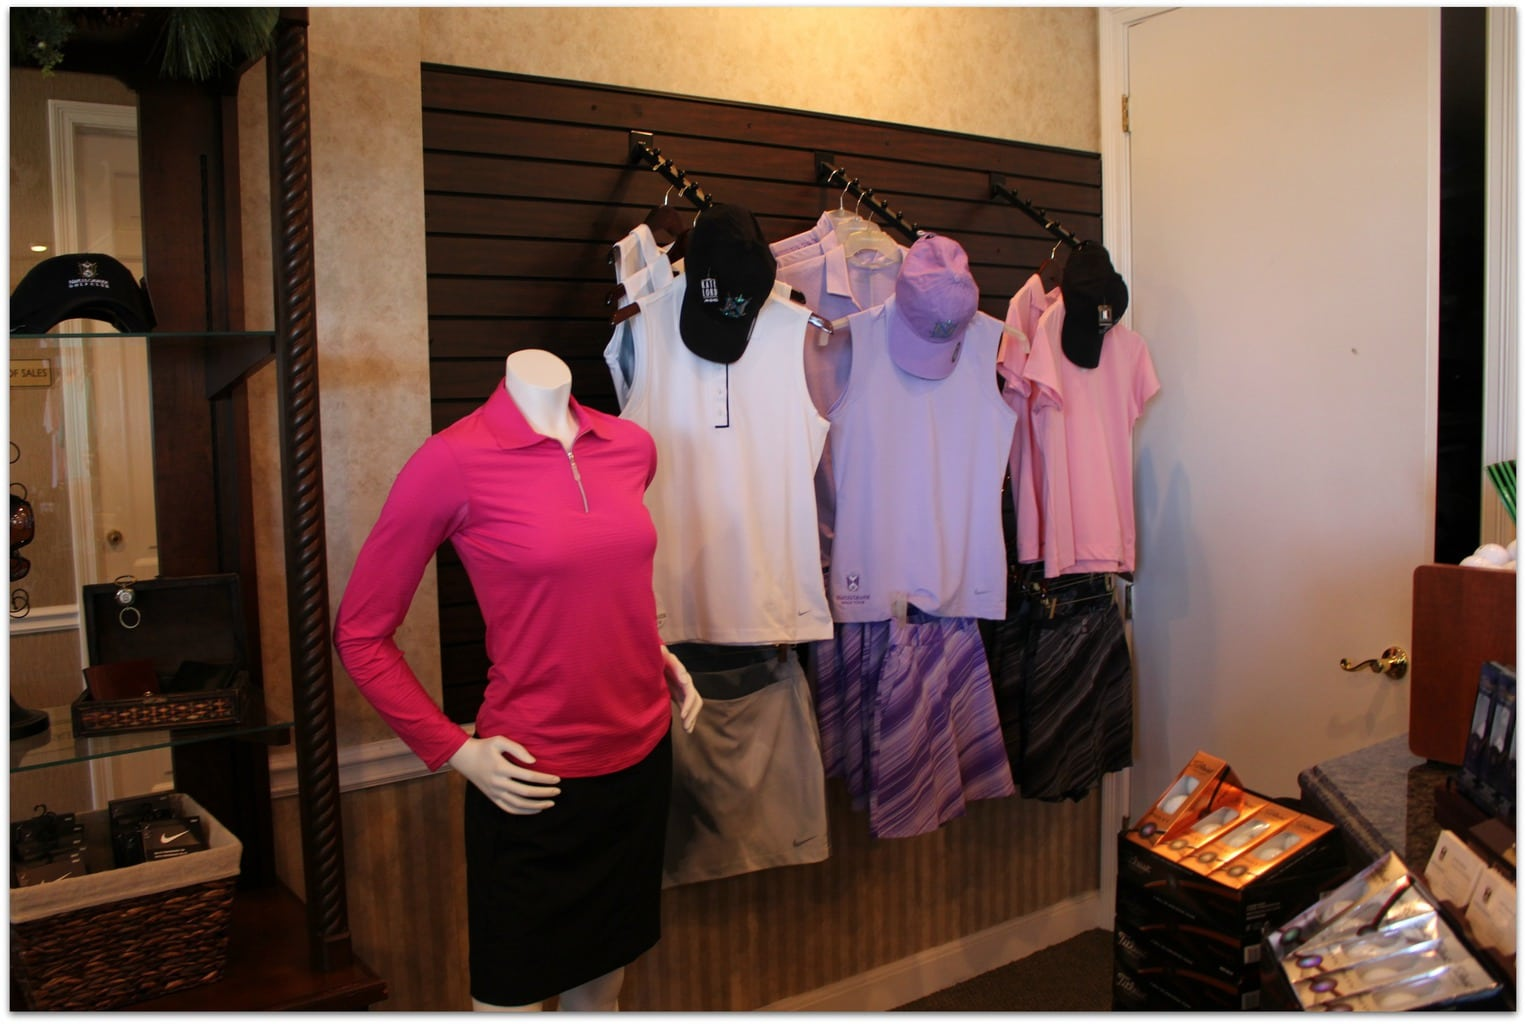 The golf shop at the Naples Grande Beach Resort had a great selection of clothing, hats, and everything else you might need, including clubs and shoes to rent, as well as instruction from PGA pros.